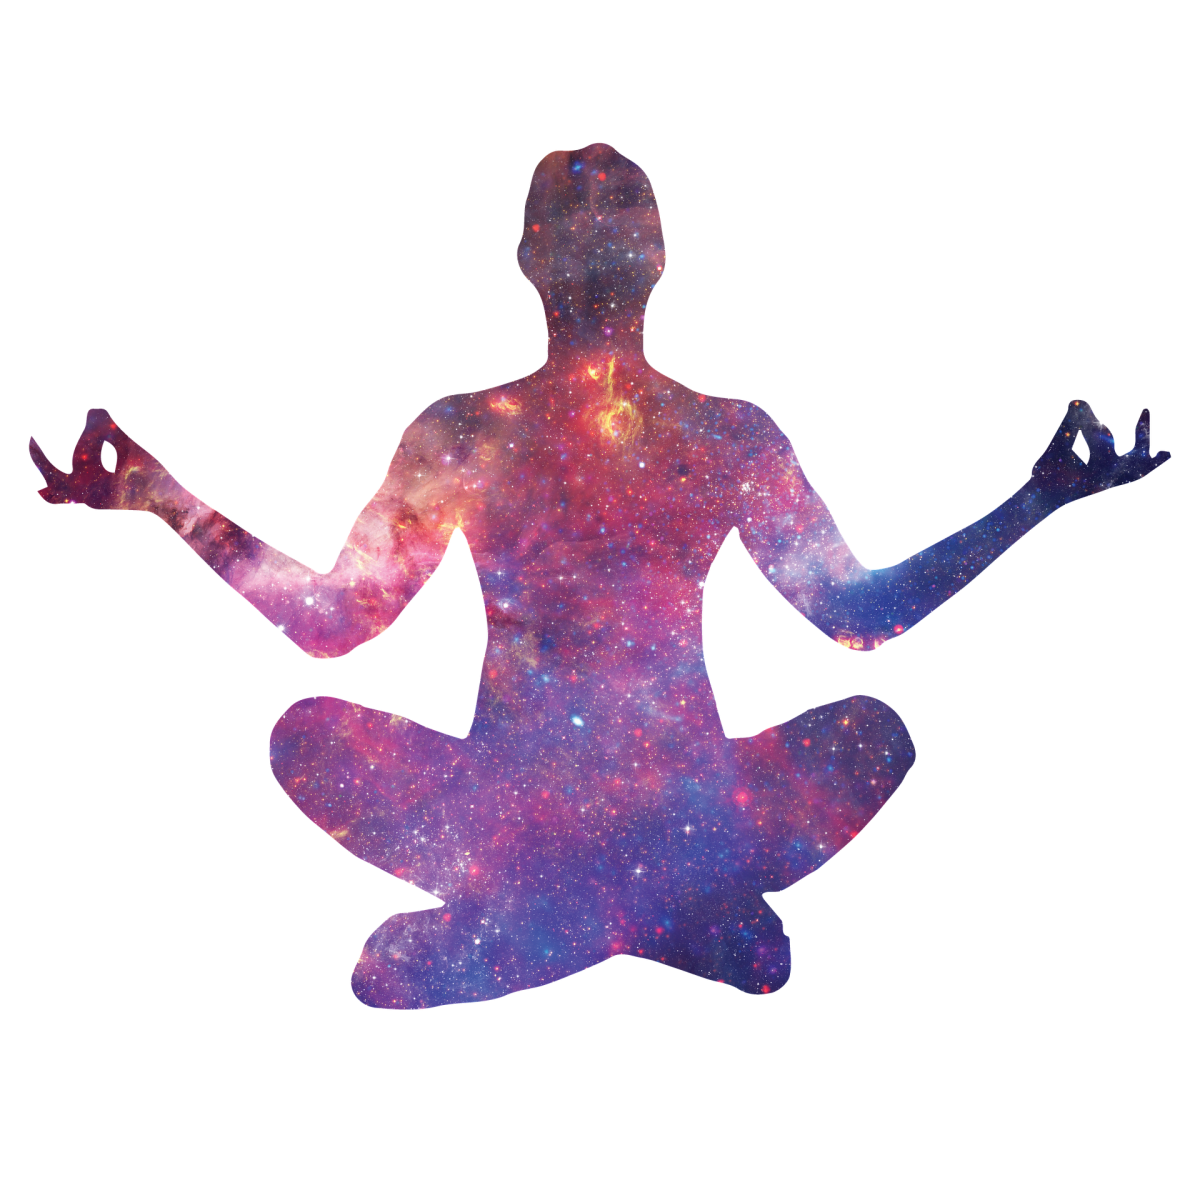 The Art of Quantum Meditation and Its Benefits for the Body and Spirit